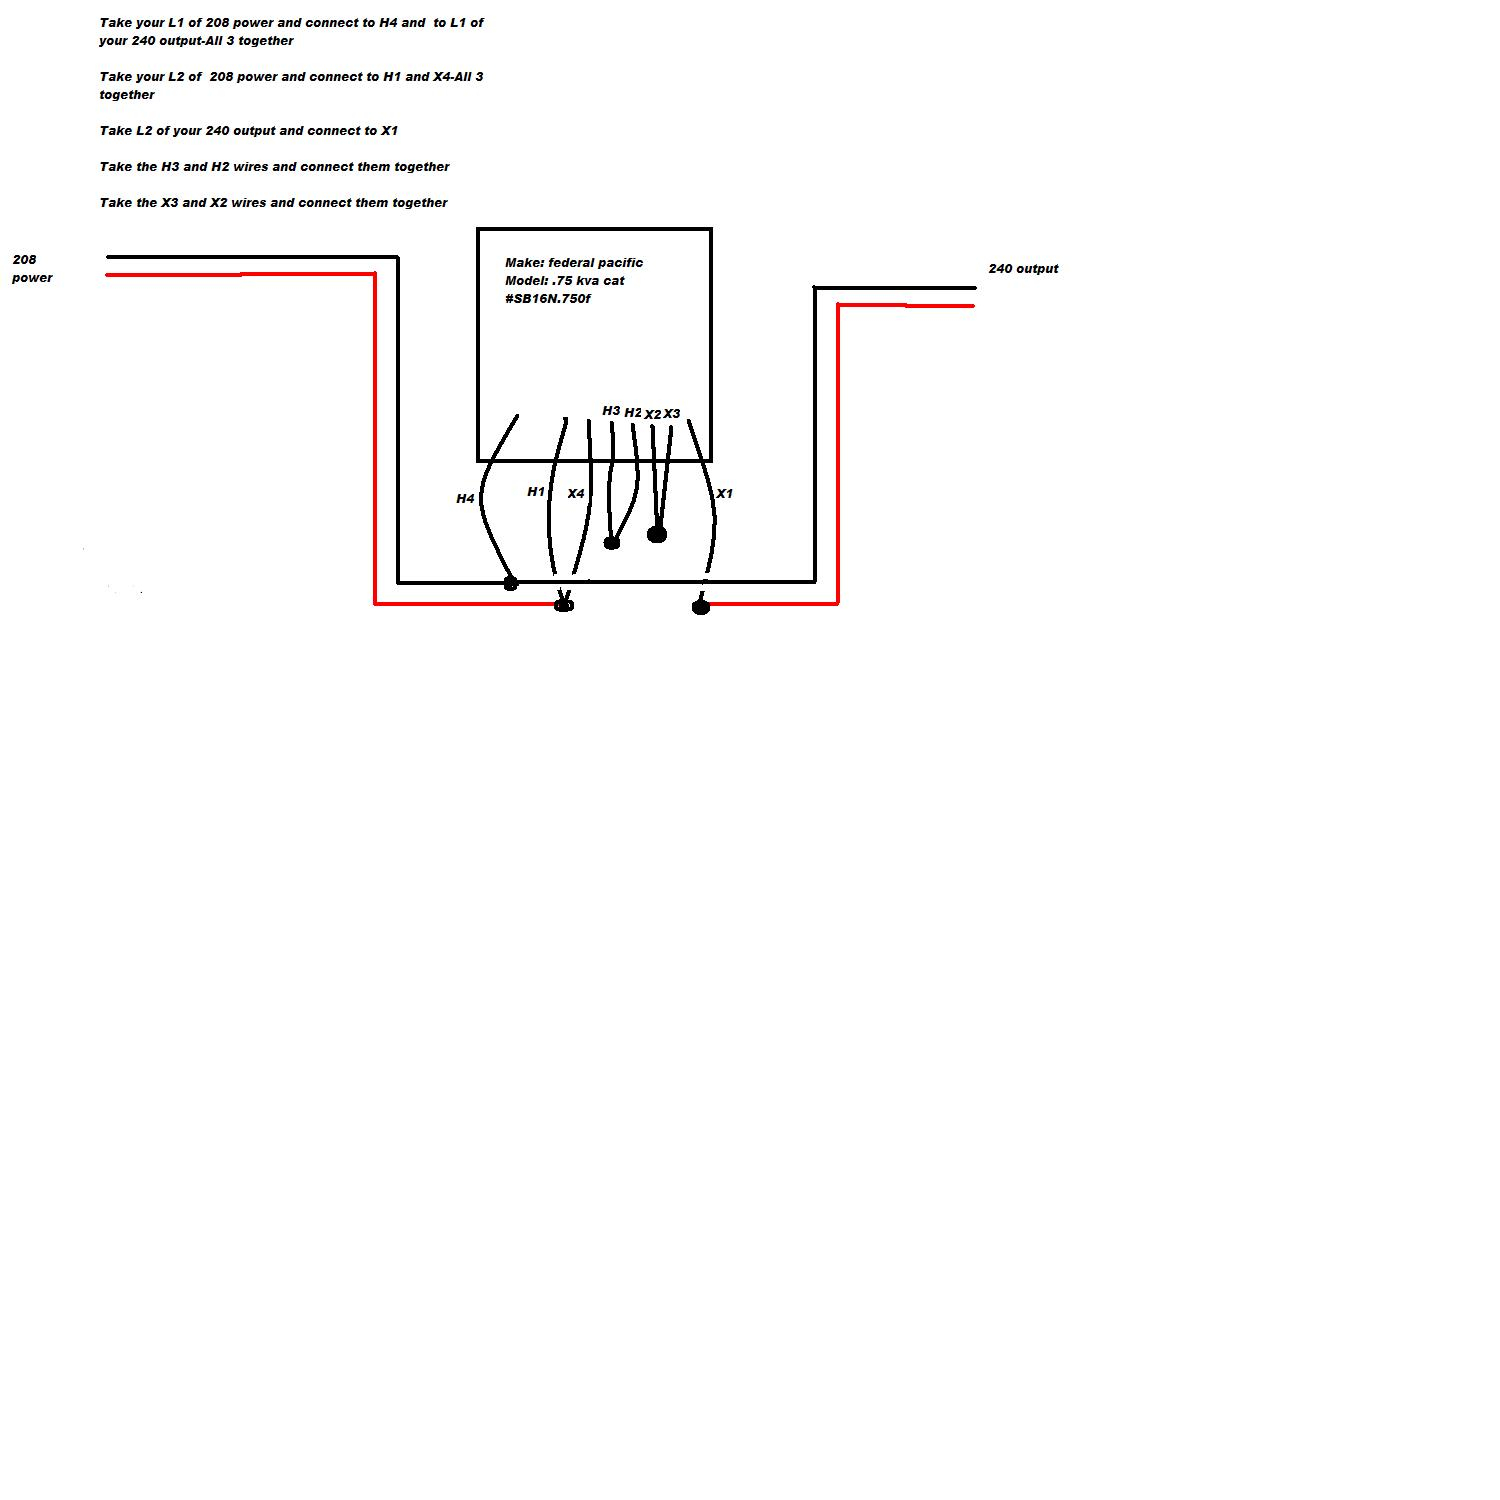 federal pacific buck boost transformer wiring diagram Download-Eaton Buck Boost Transformer Wiring Diagram New Diagram Buck Boost 12-g